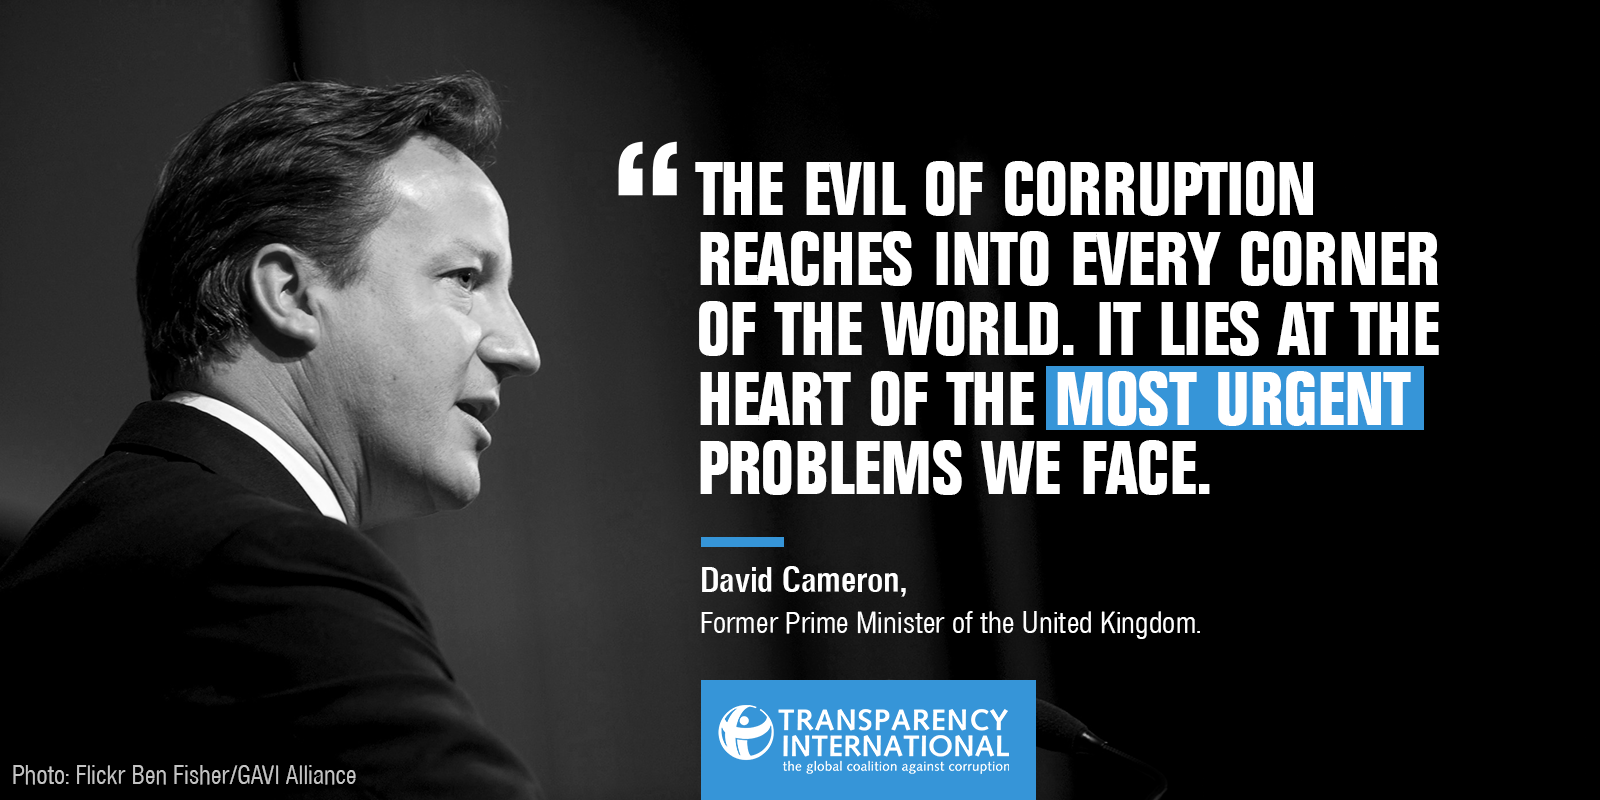 10 quotes about corruption and transparency (Vol 2)